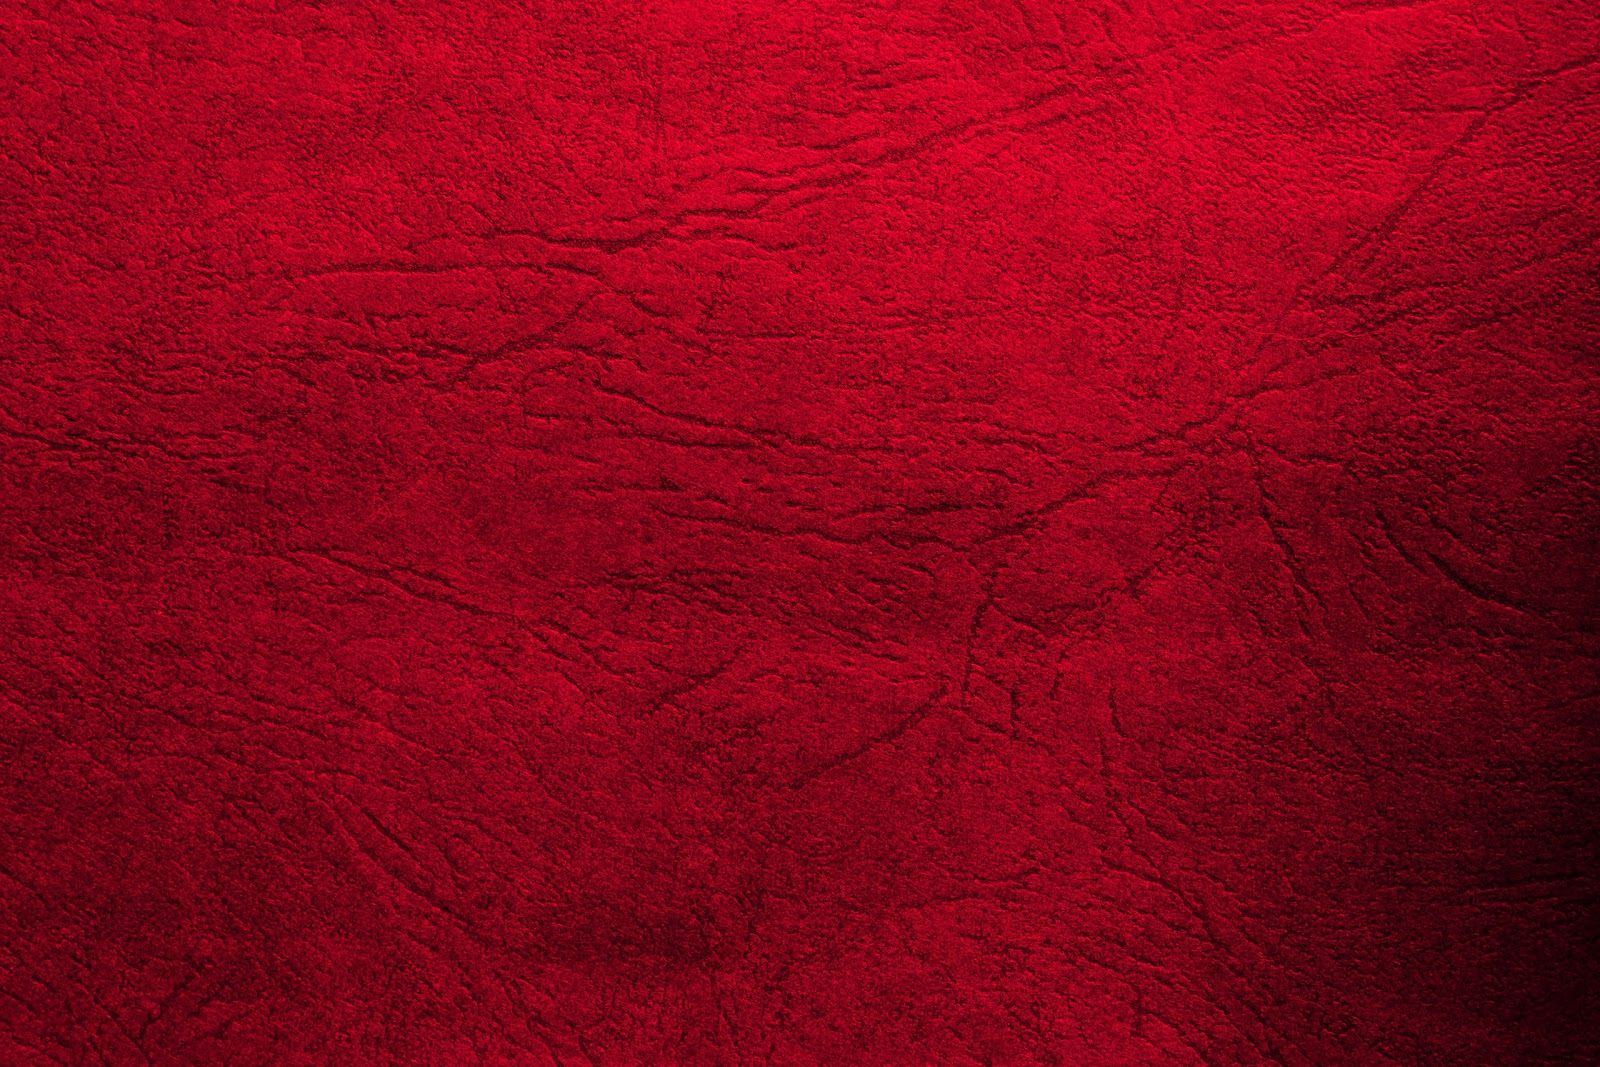 Red Textured Wallpaper red texture wallpapers desktop wallpapers in 2020 Textured